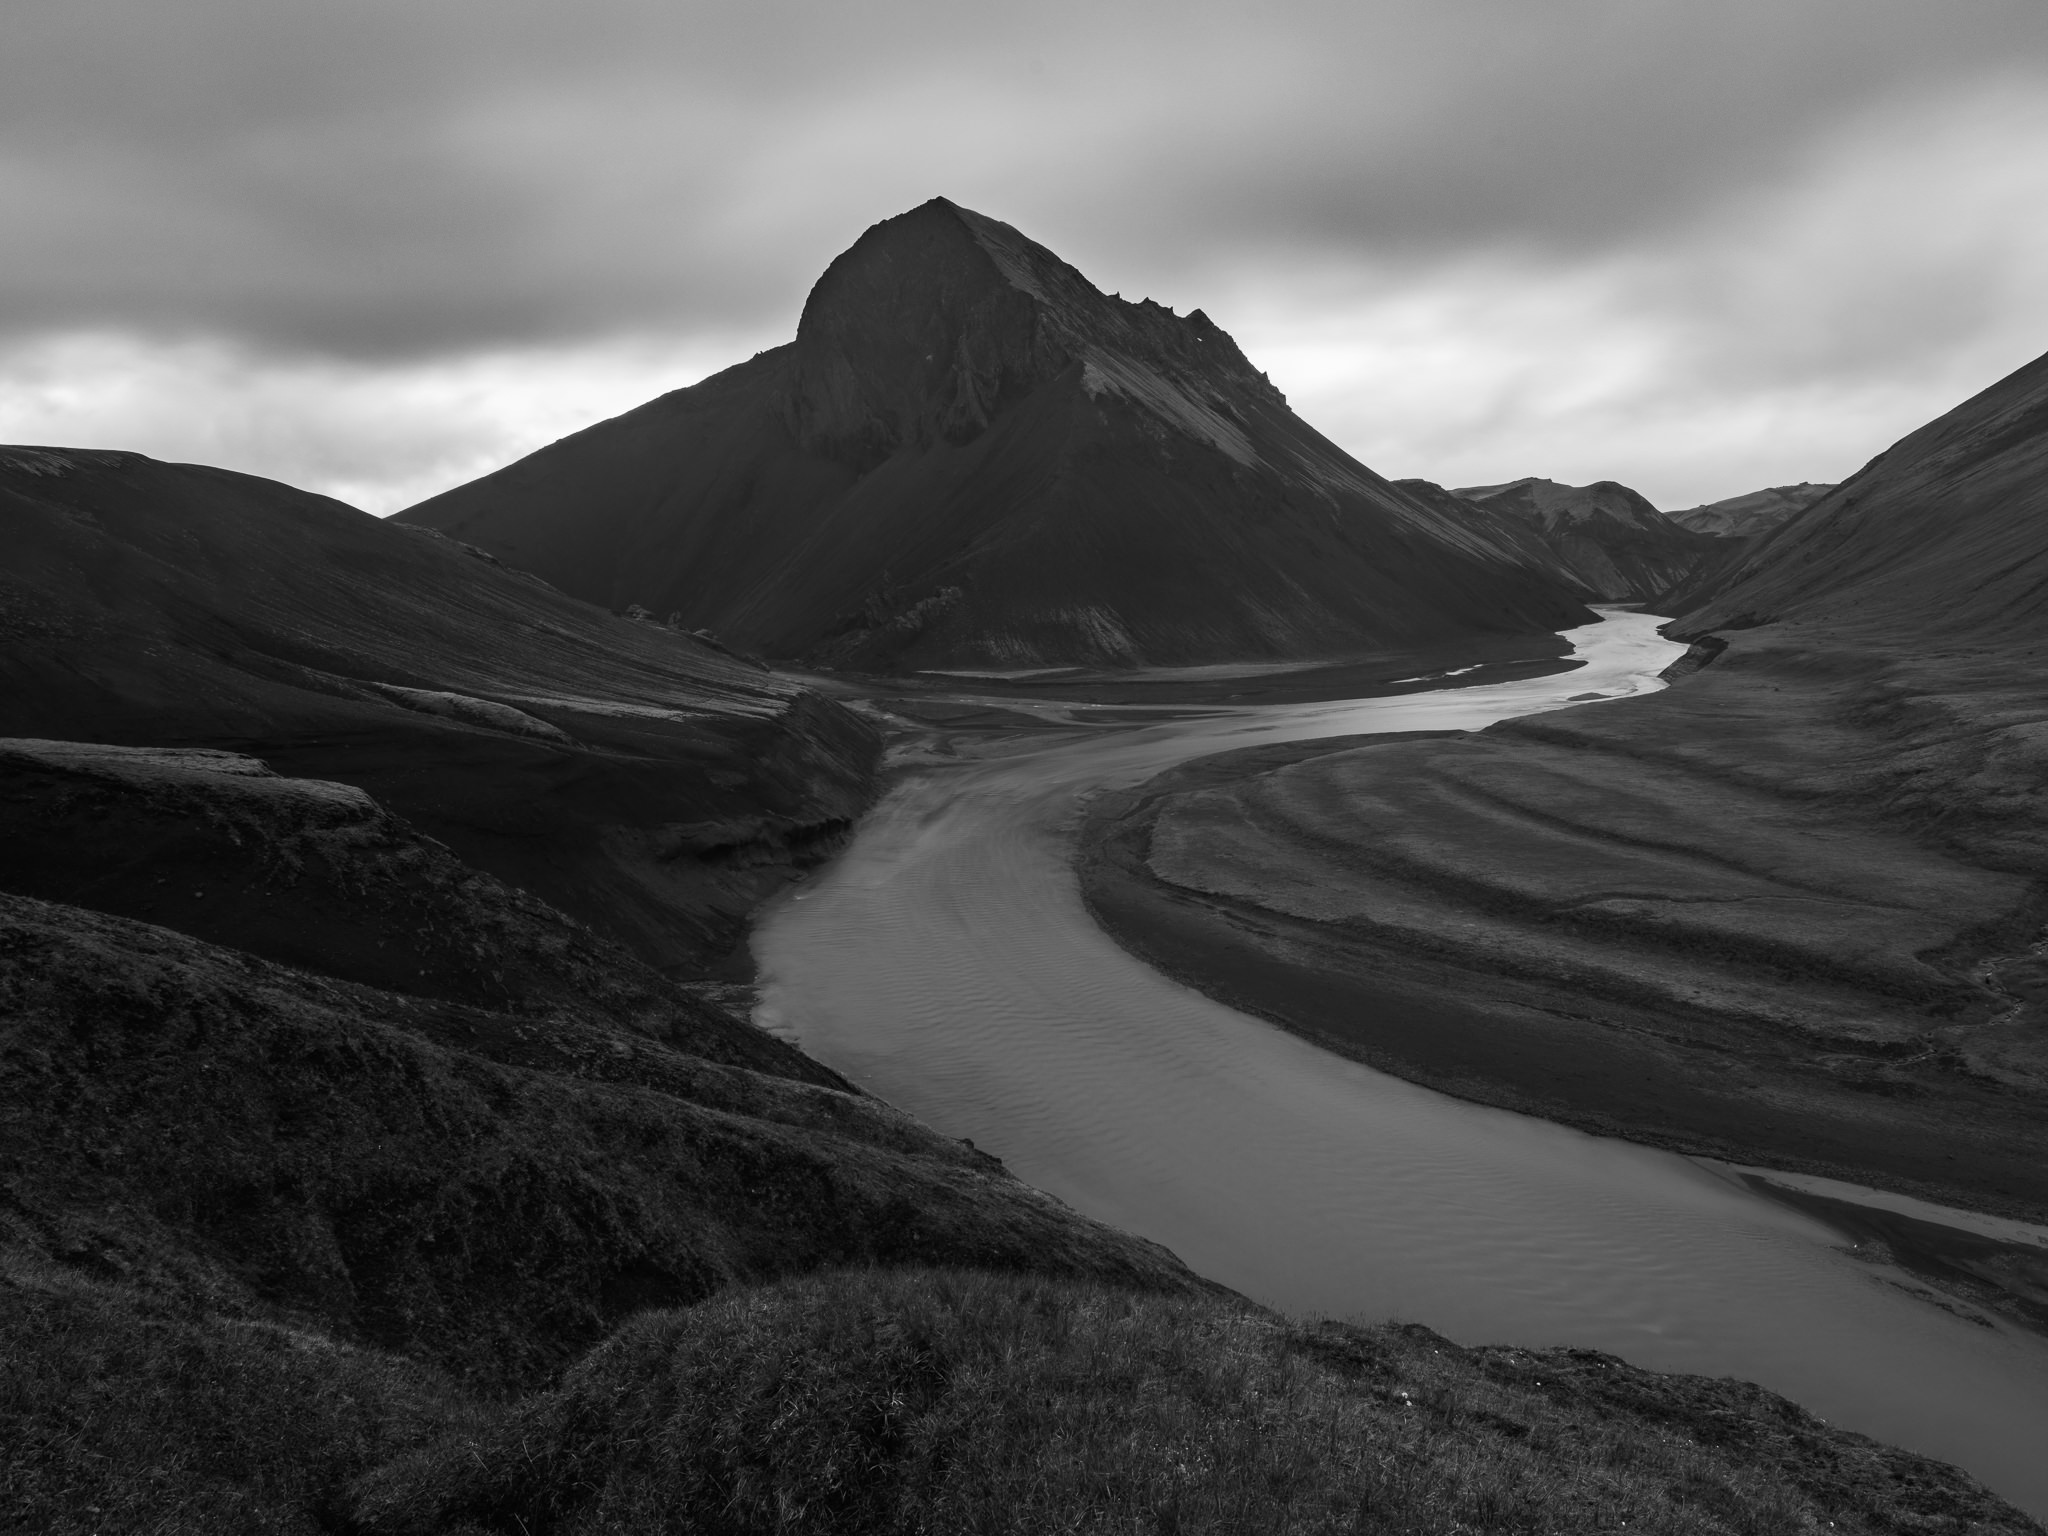 Triangle mountain black and white nikon d800e tamron 15 30mm f 2 8 vc 21mm iso 100 8 seconds f 10 0